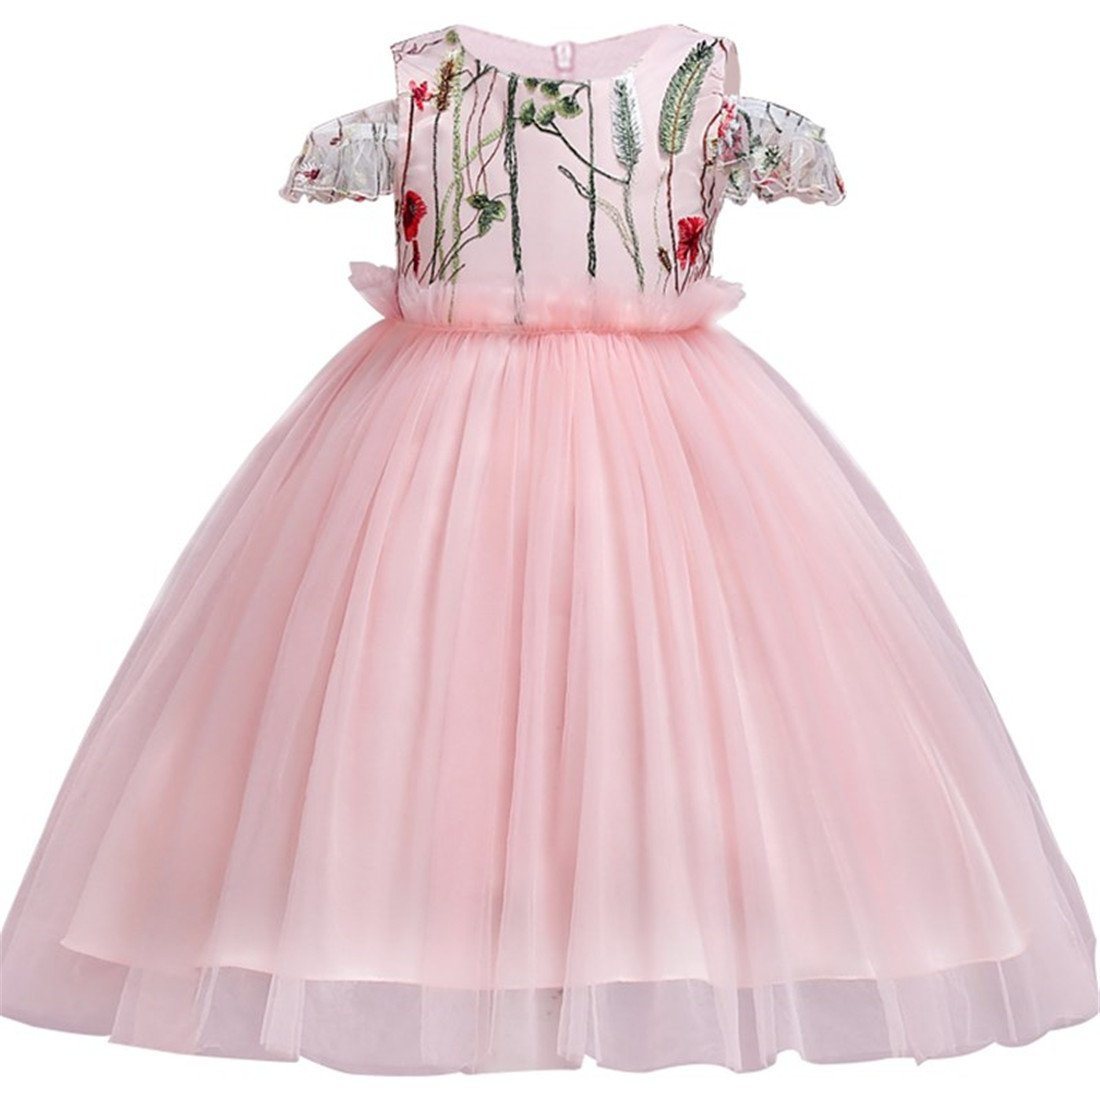 FKKFYY Wedding Party Holiday Big Girl Dress with Embroidery LP76A01